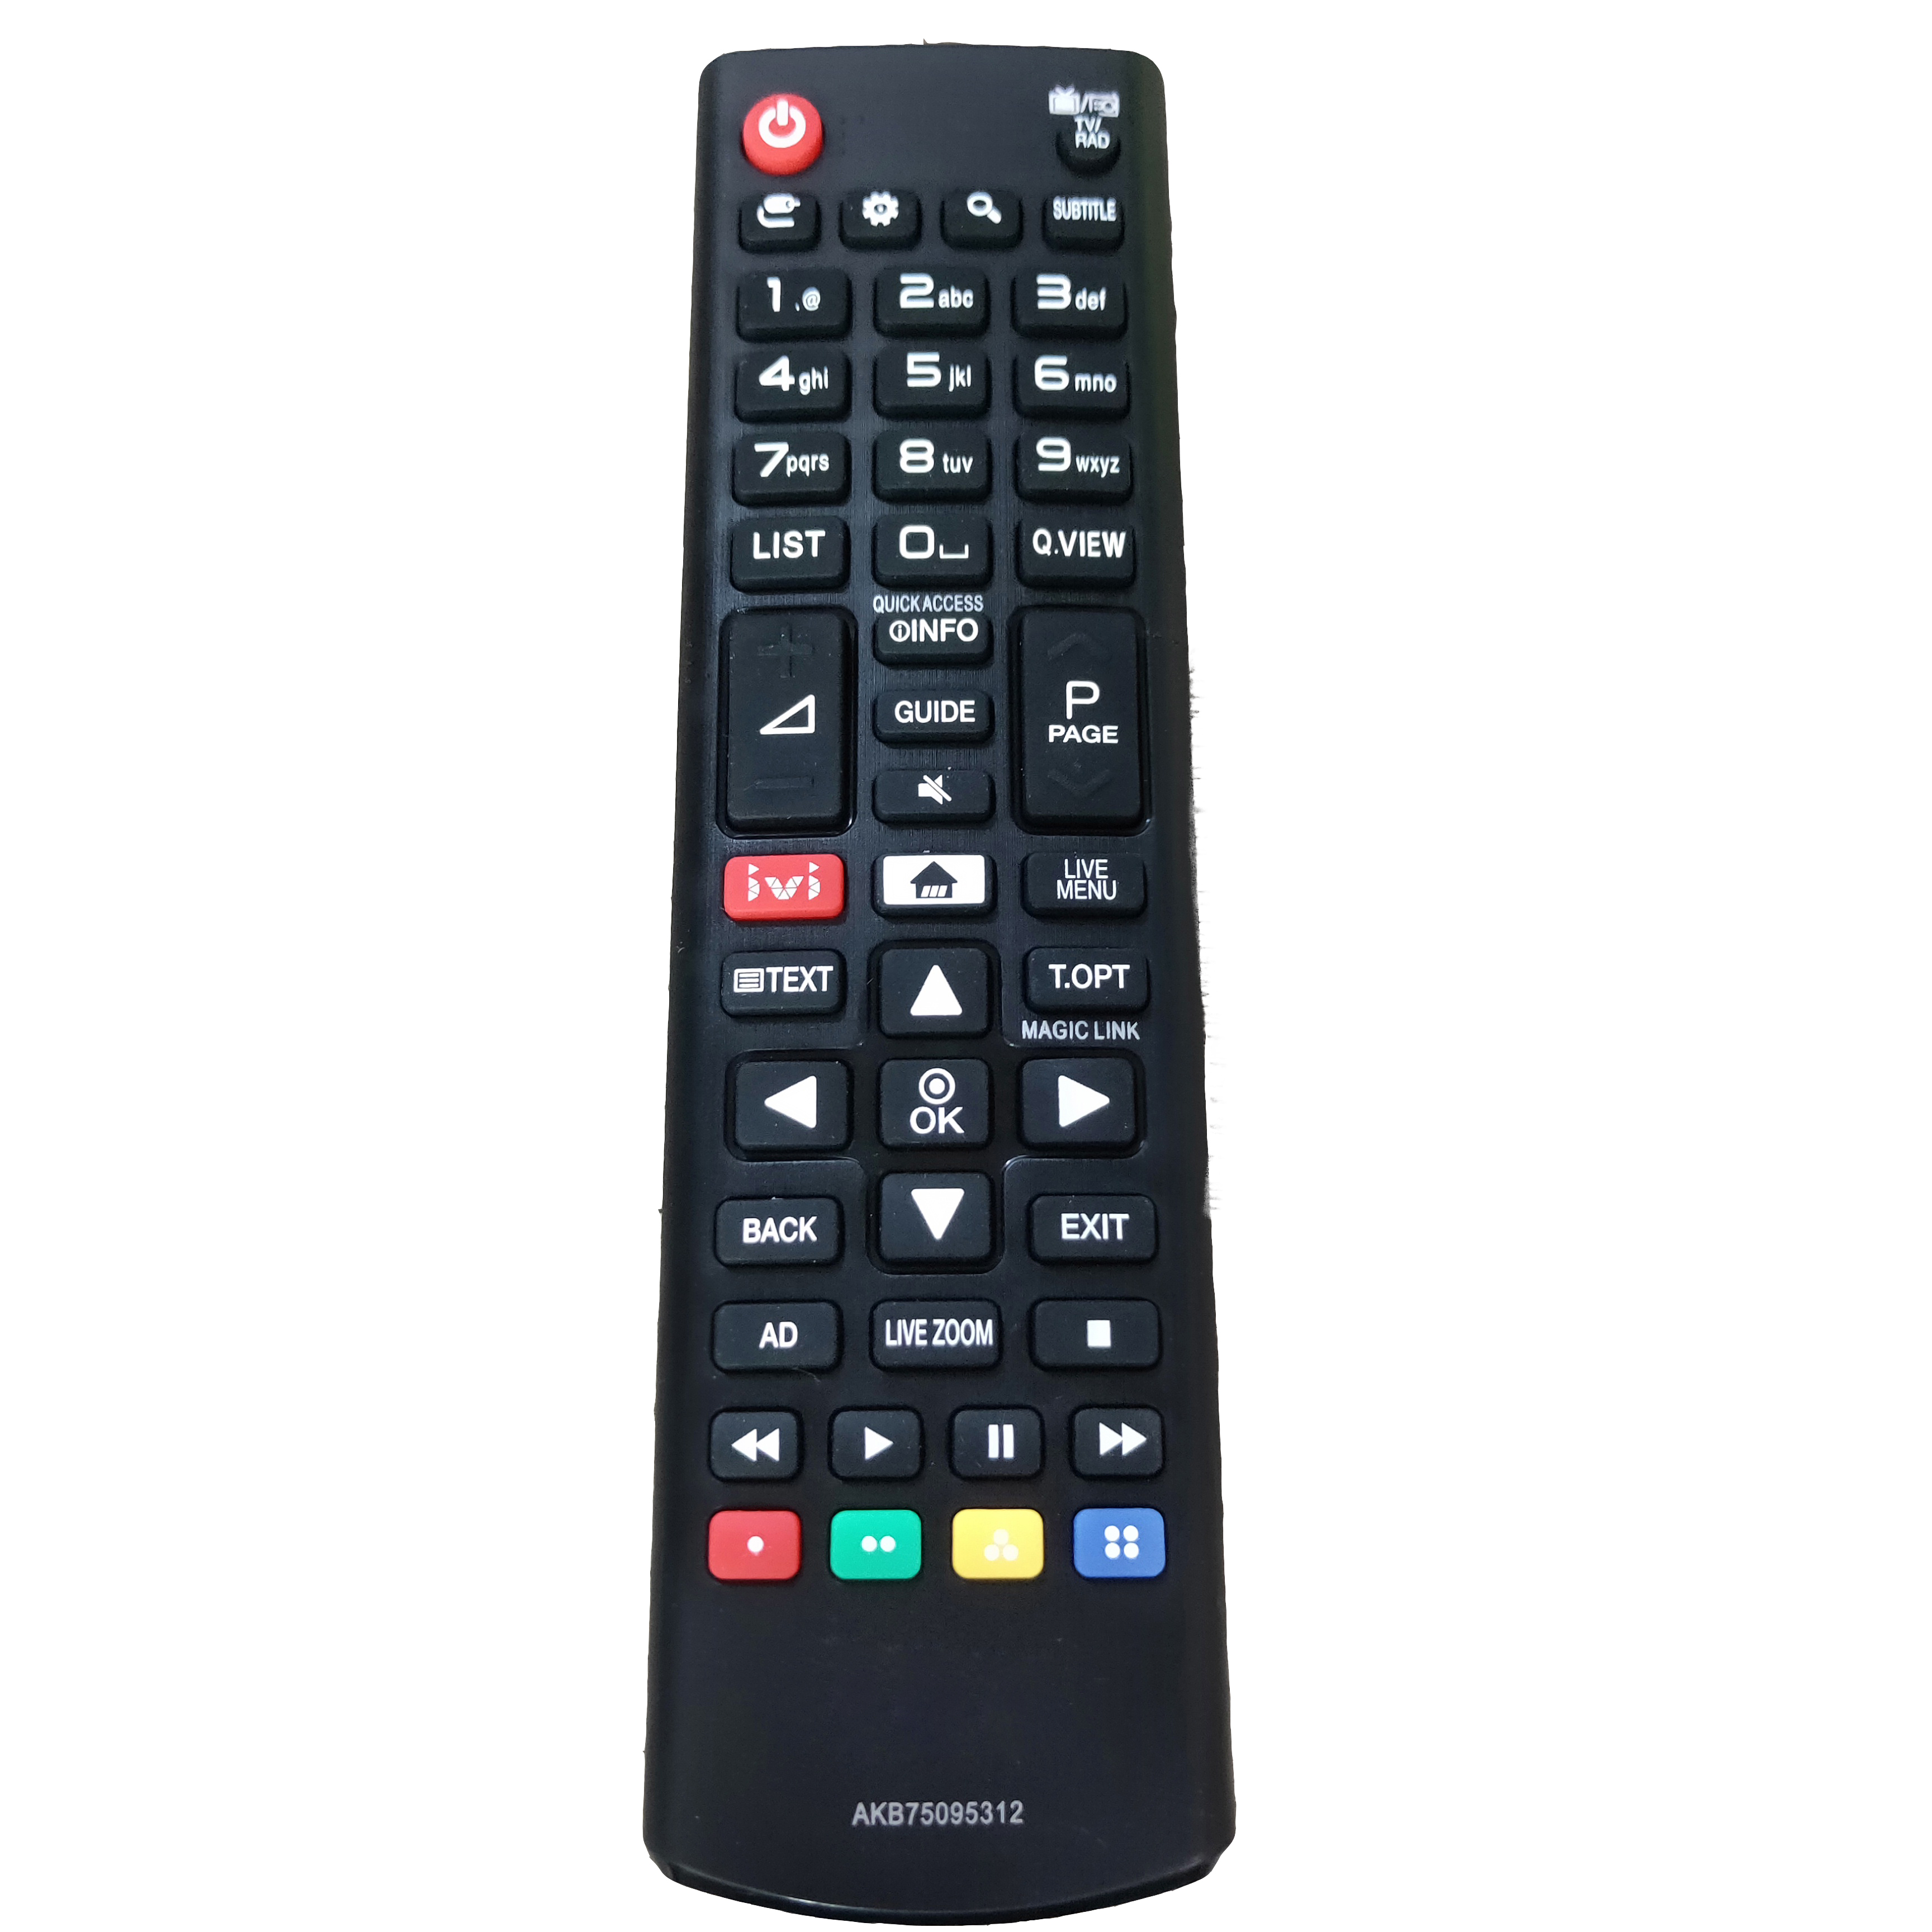 New AKB75095312 Replacement for LG LCD LED TV with IVI Remote Control 2017 Fernbedienung in Remote Controls from Consumer Electronics